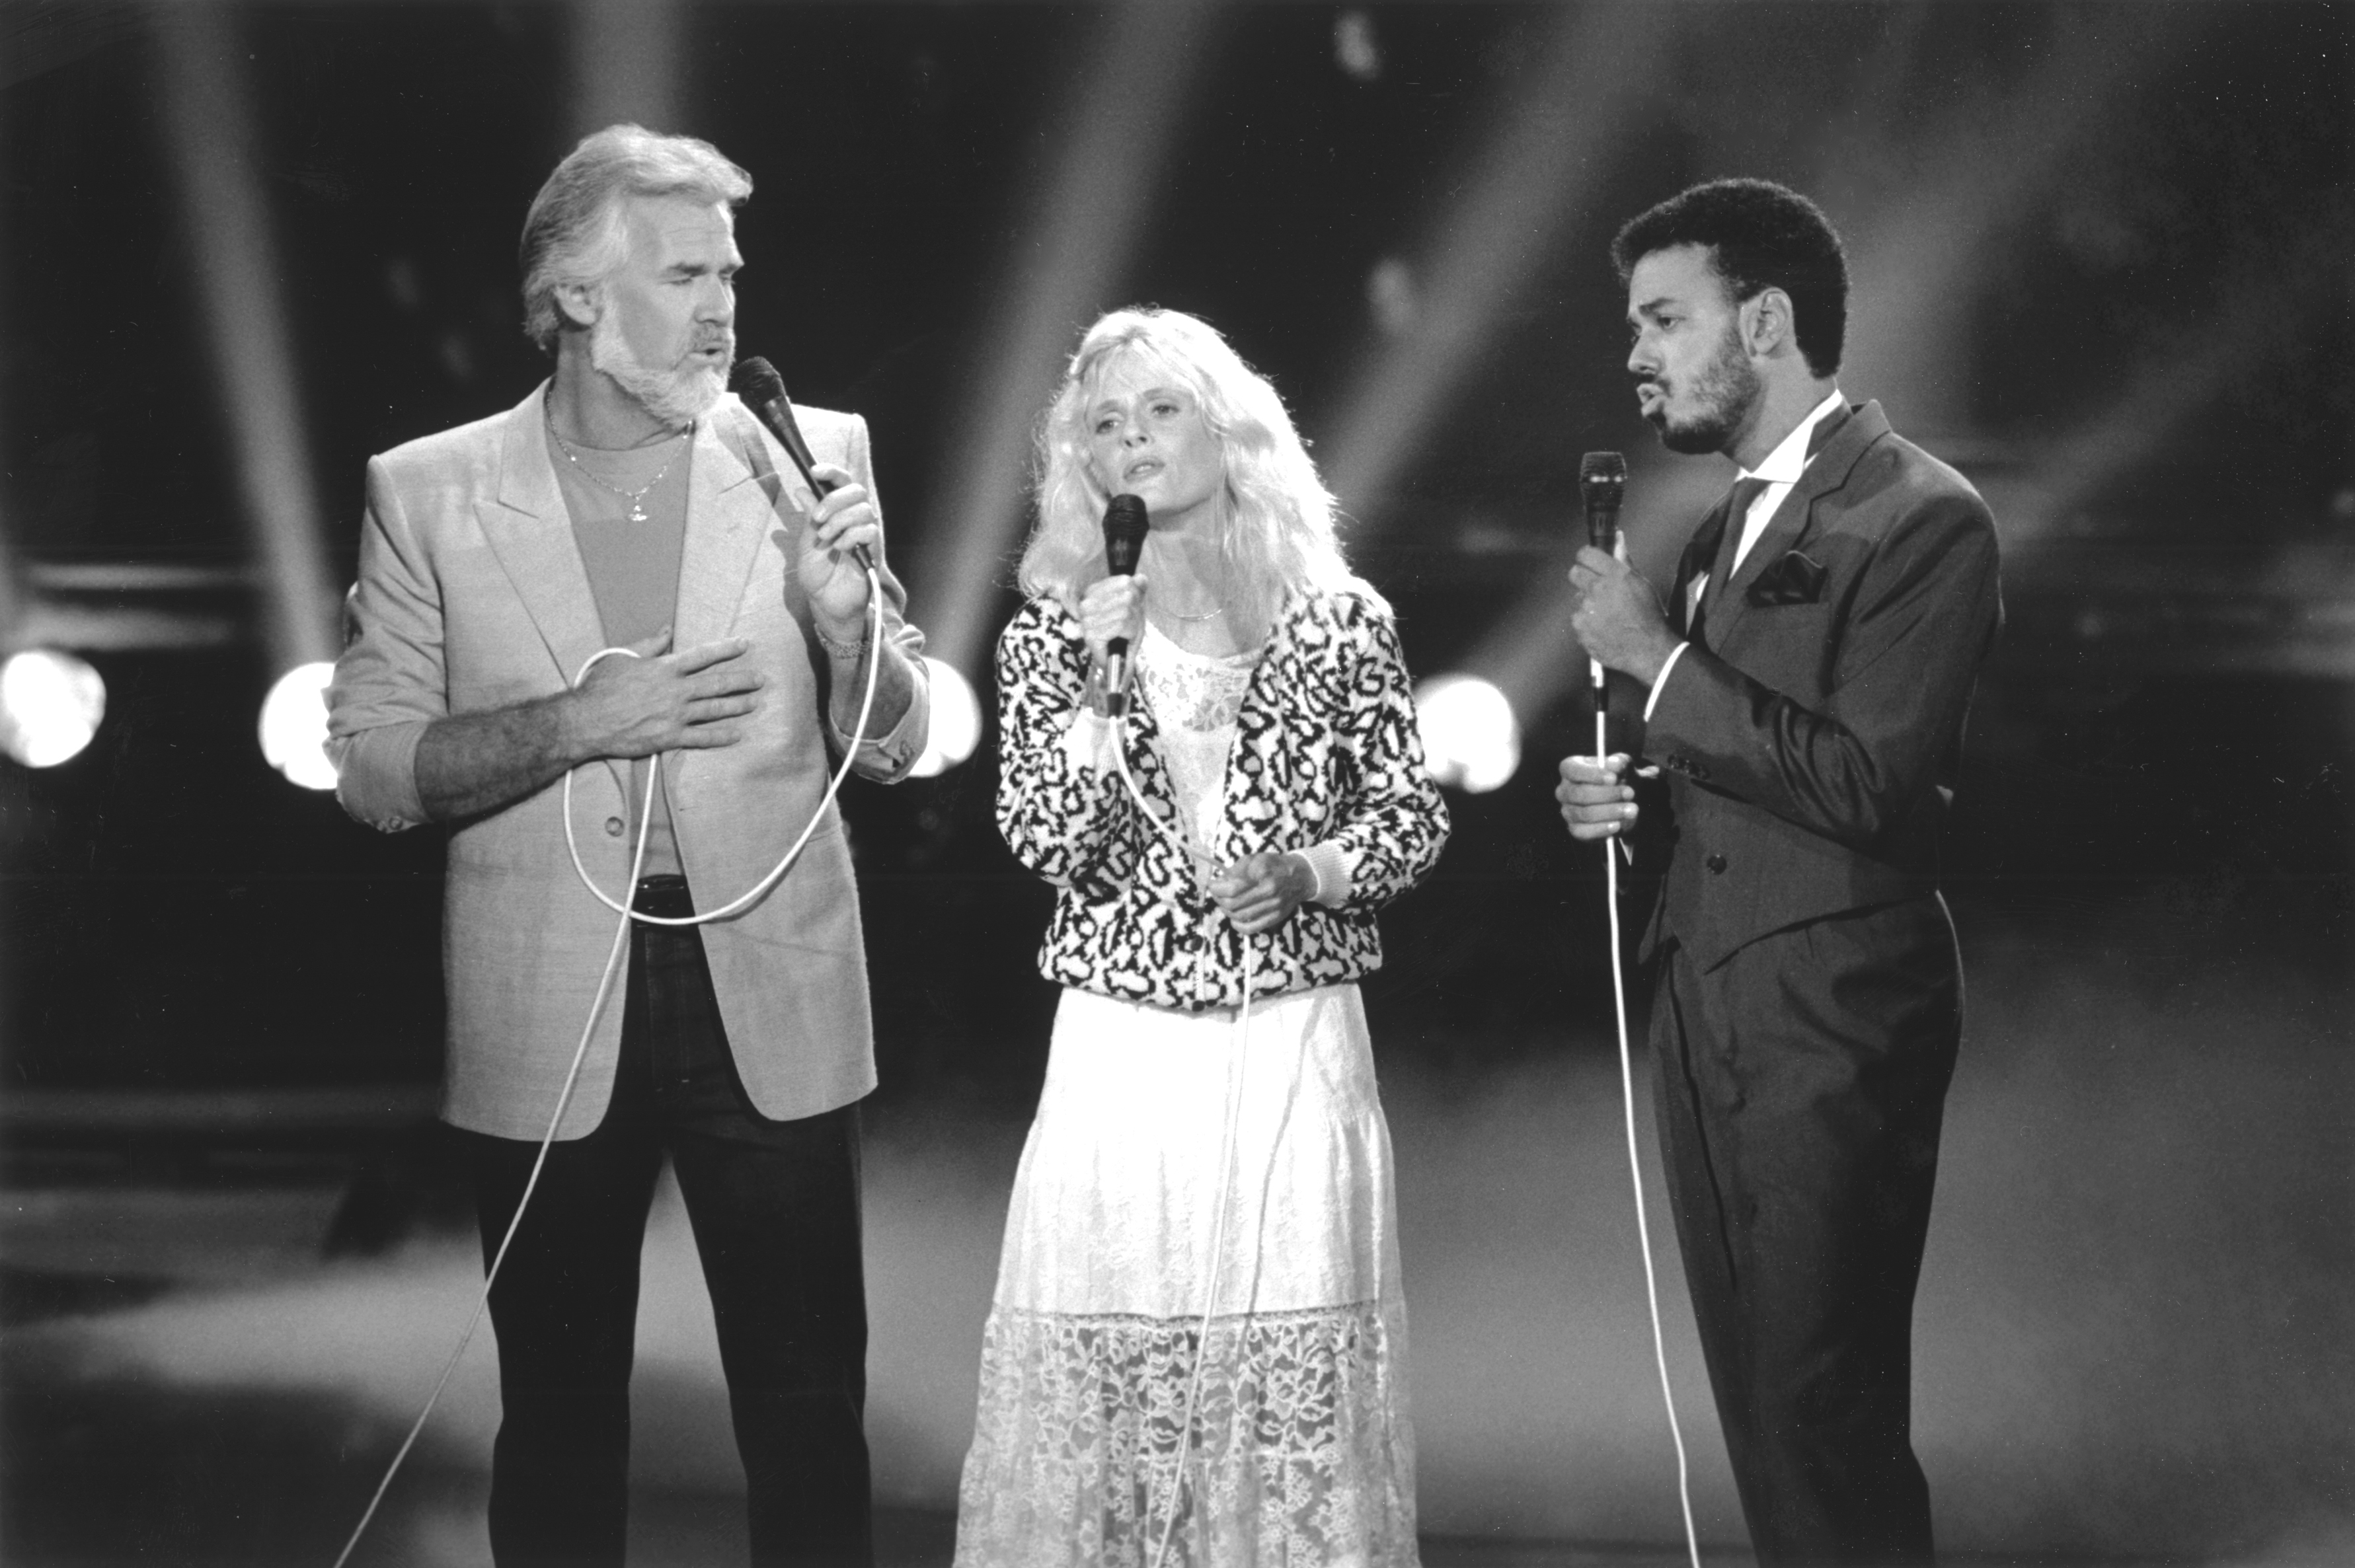 Kenny Rogers, Kim Carnes, James Ingram performing on Solid Gold - Kenny Rogers Retrospective